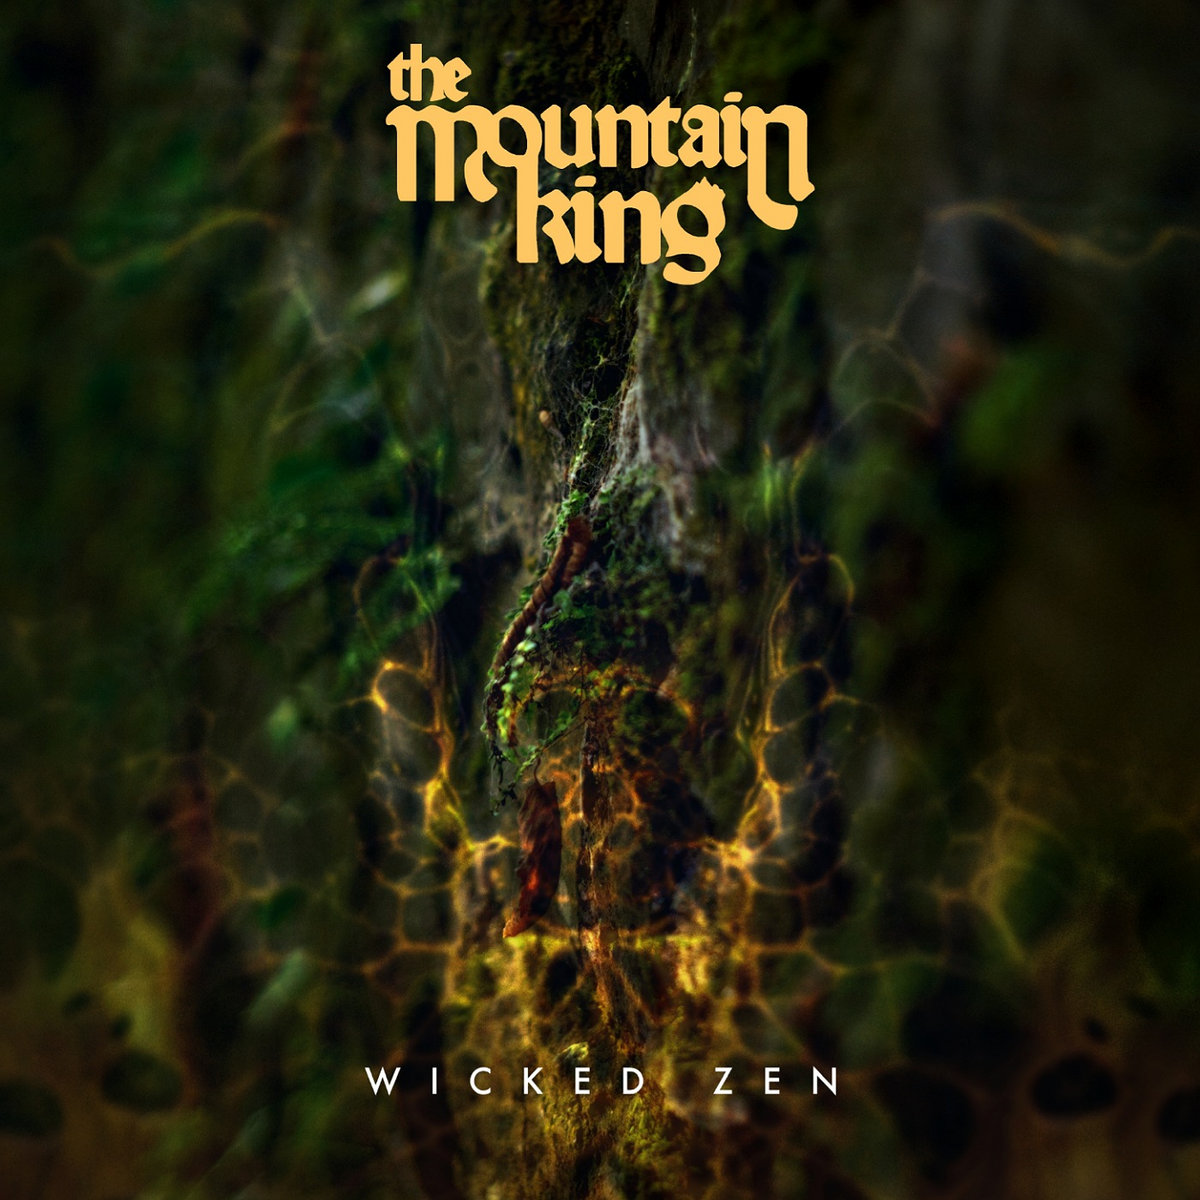 The Mountain King Wicked Zen